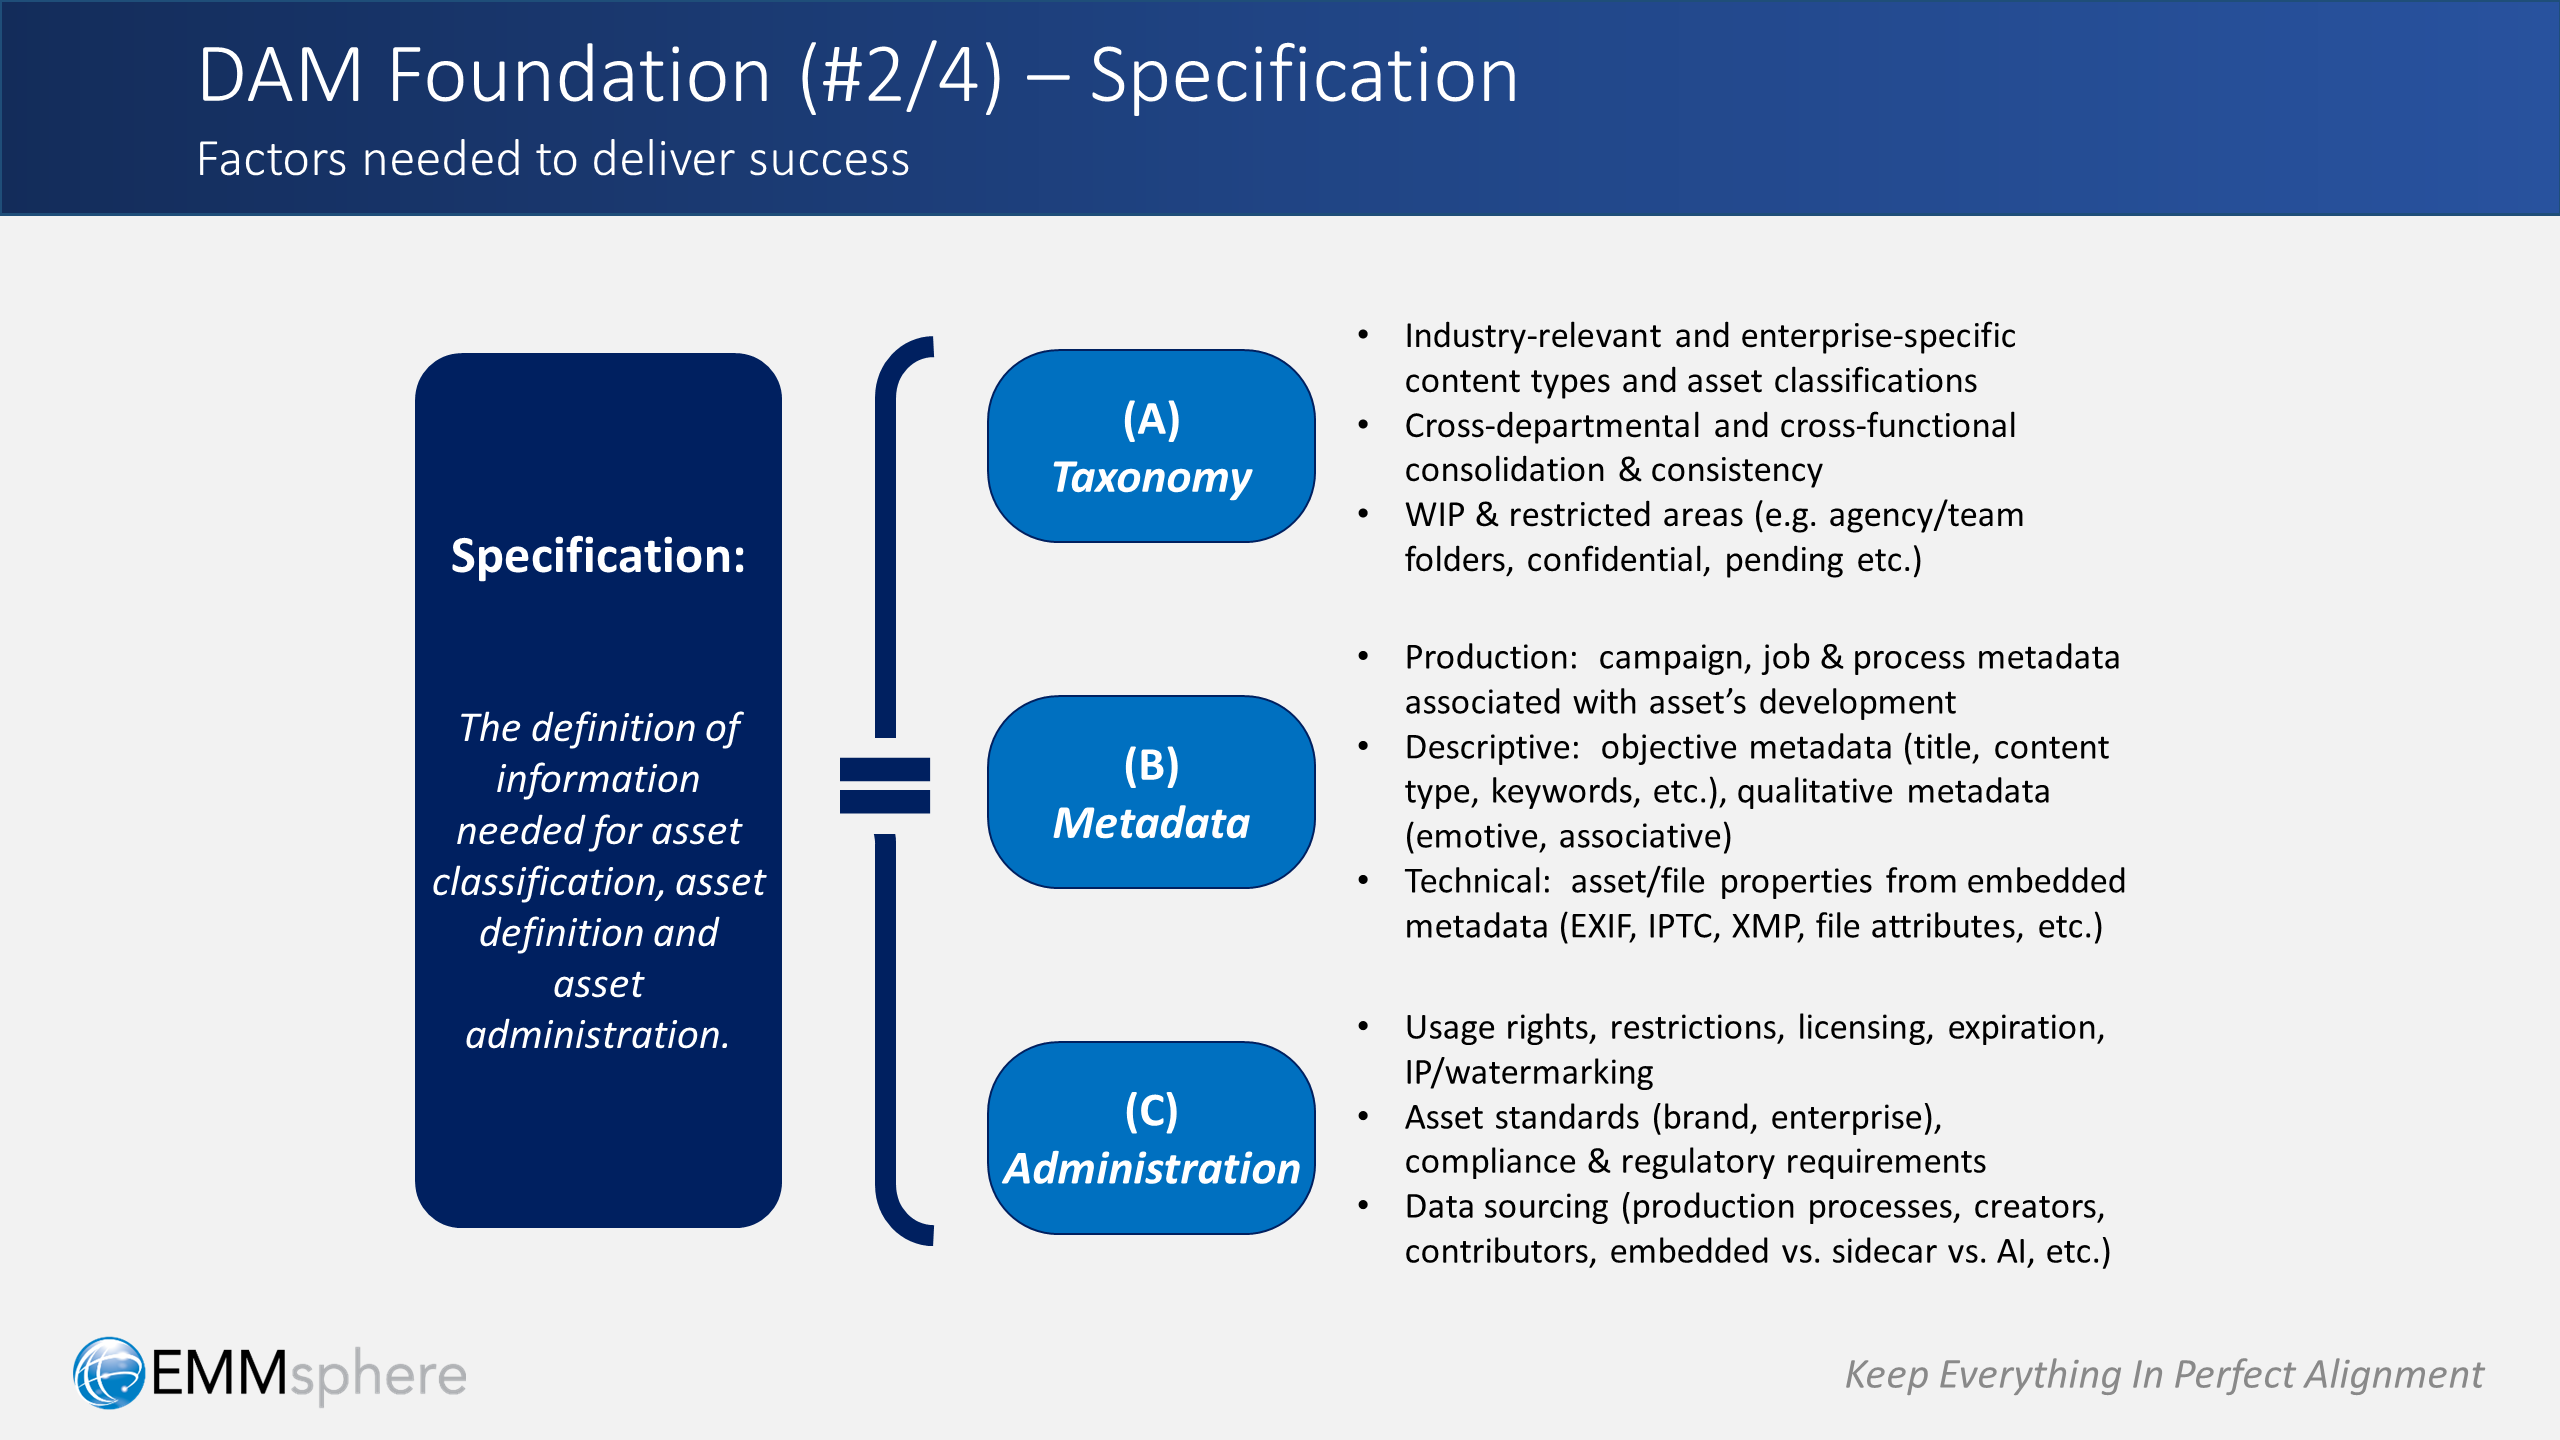 DAM Perspectives Part 4 - Specification